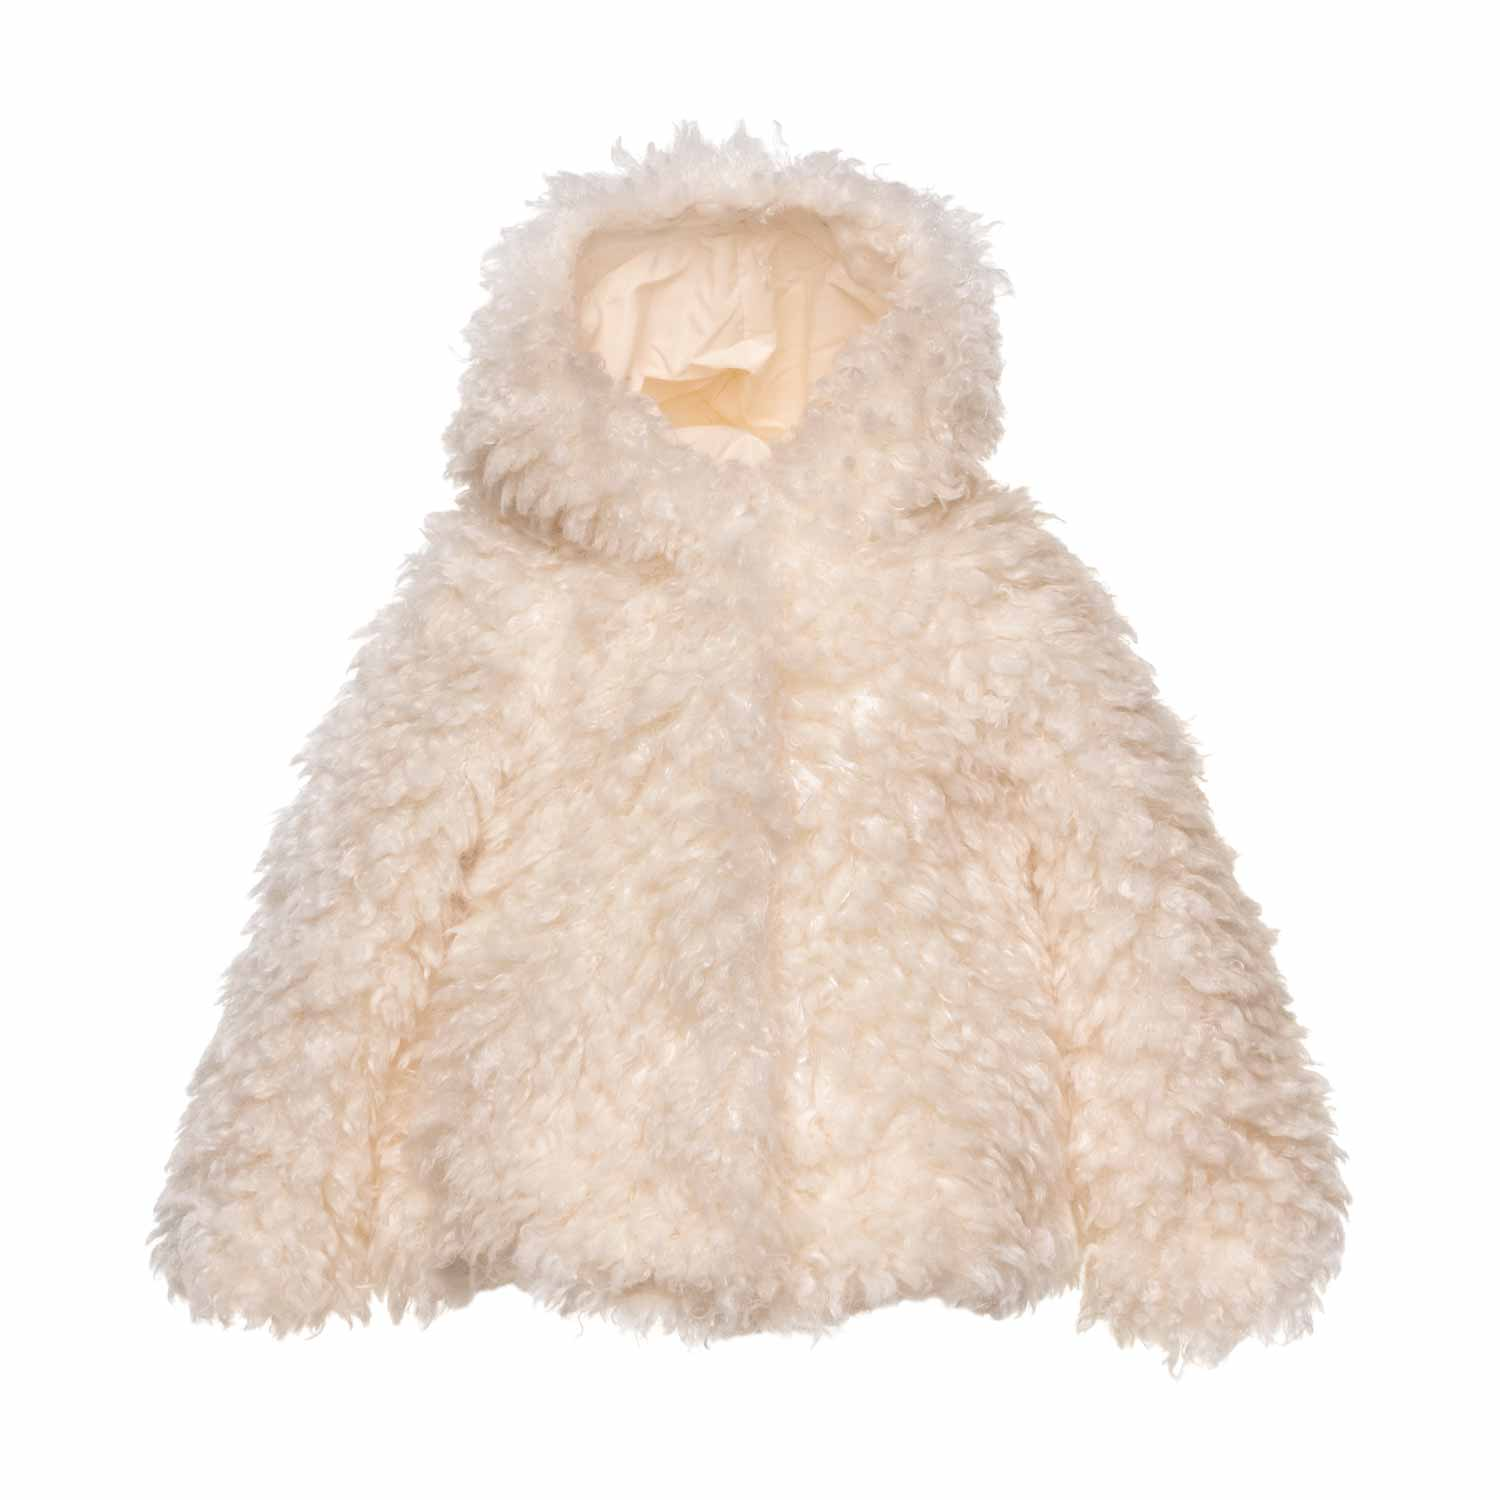 05db53b793d3 Monnalisa - Baby Girls Faux Fur Coat - annameglio.com shop online